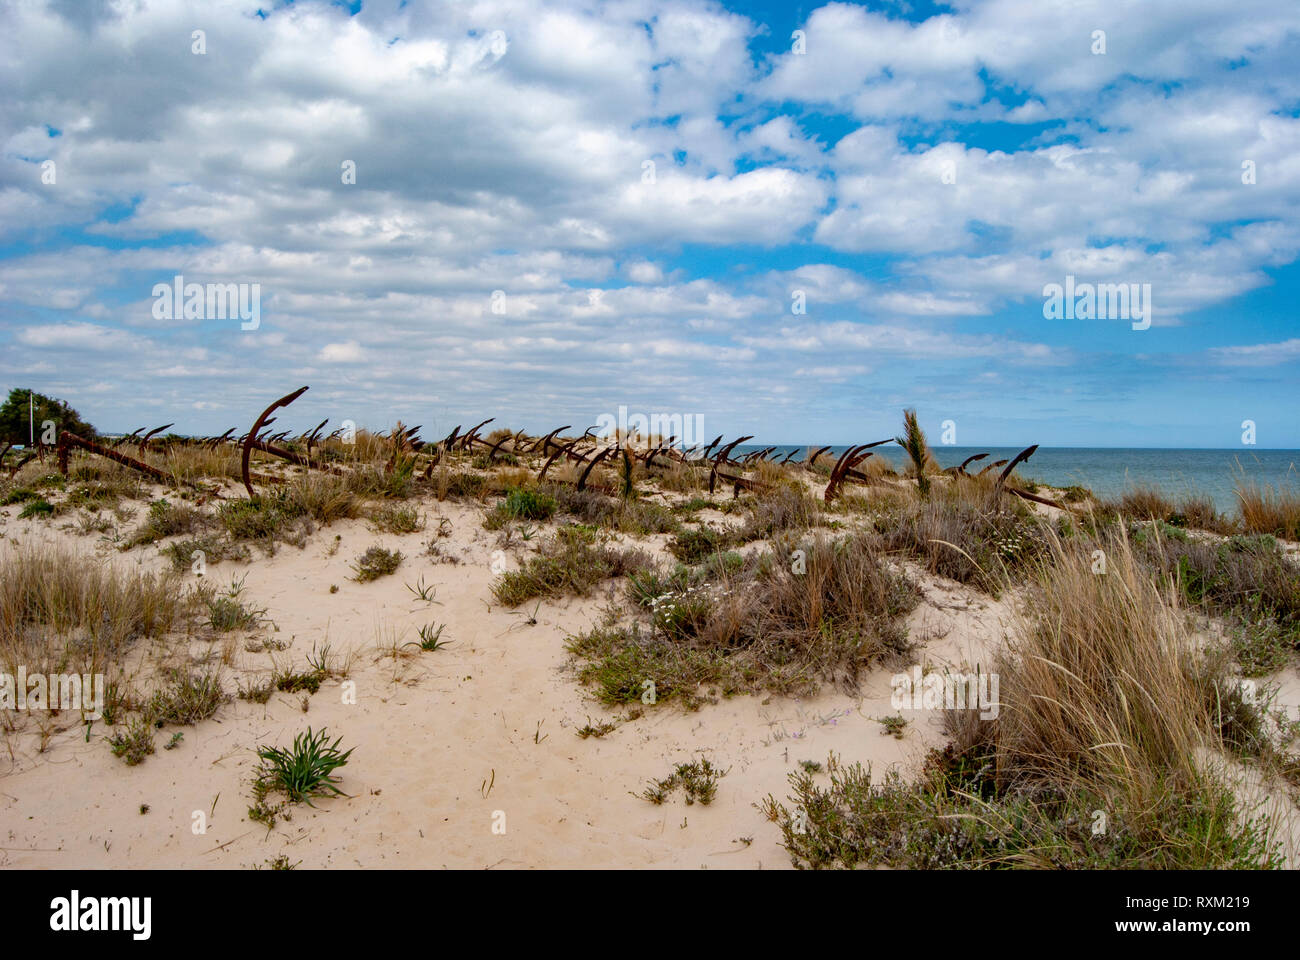 Cemetery of anchors on the beach at Praia Do Barril in Santa Luzia, Algarve, Portugal, Stock Photo